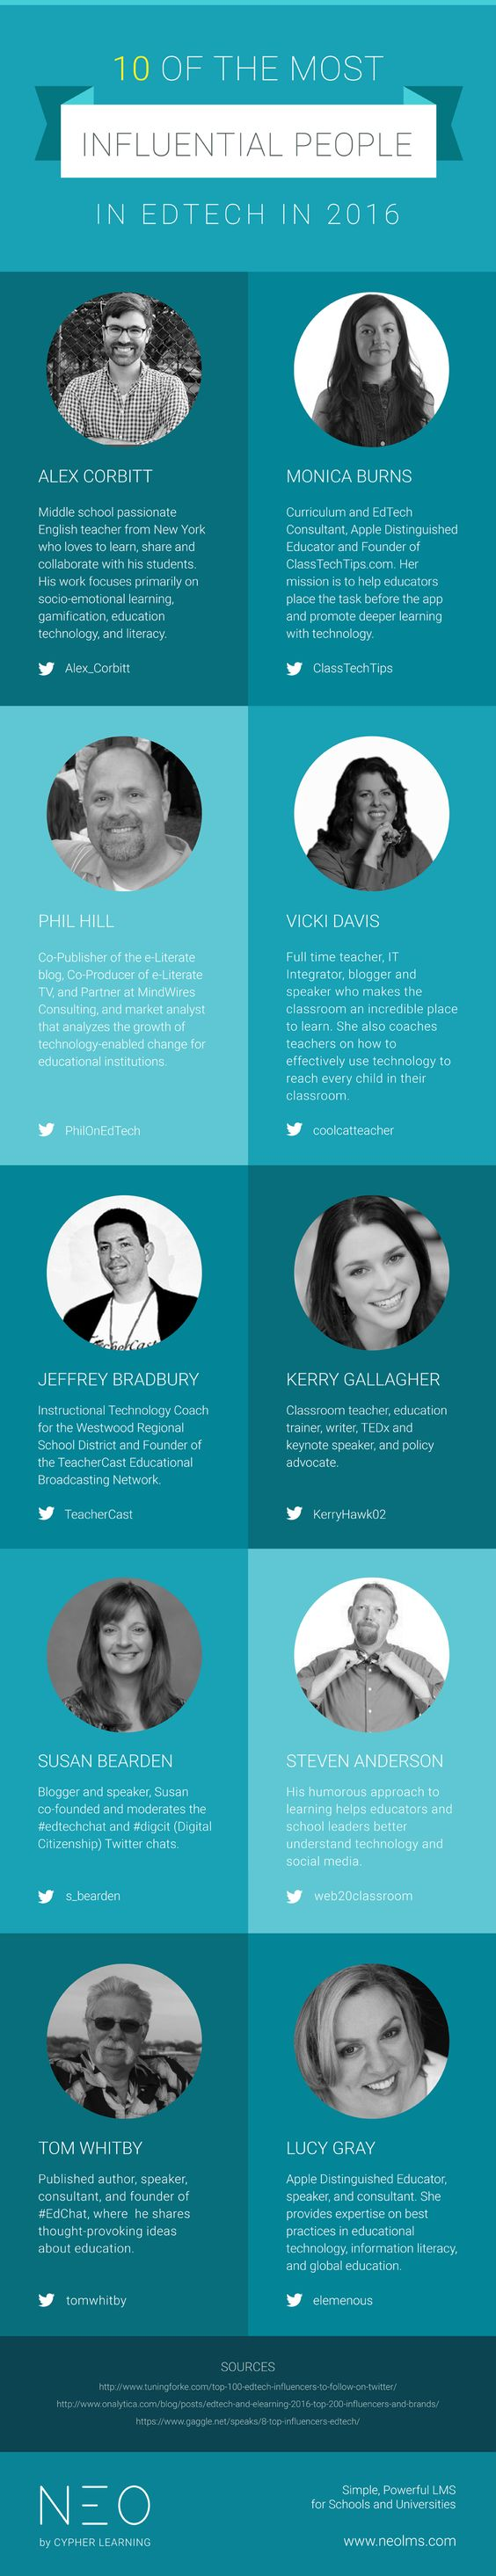 10 Most Influential People in EdTech in 2016 Infographic; https://mcdonaldsalesandmarketing.biz/tom-mcdonalds-posts/; https://mcdonaldsalesandmarketing.biz/38371/sis-lms-lcms-educationally-innovative-software/; https://mcdonaldsalesandmarketing.biz/research/: